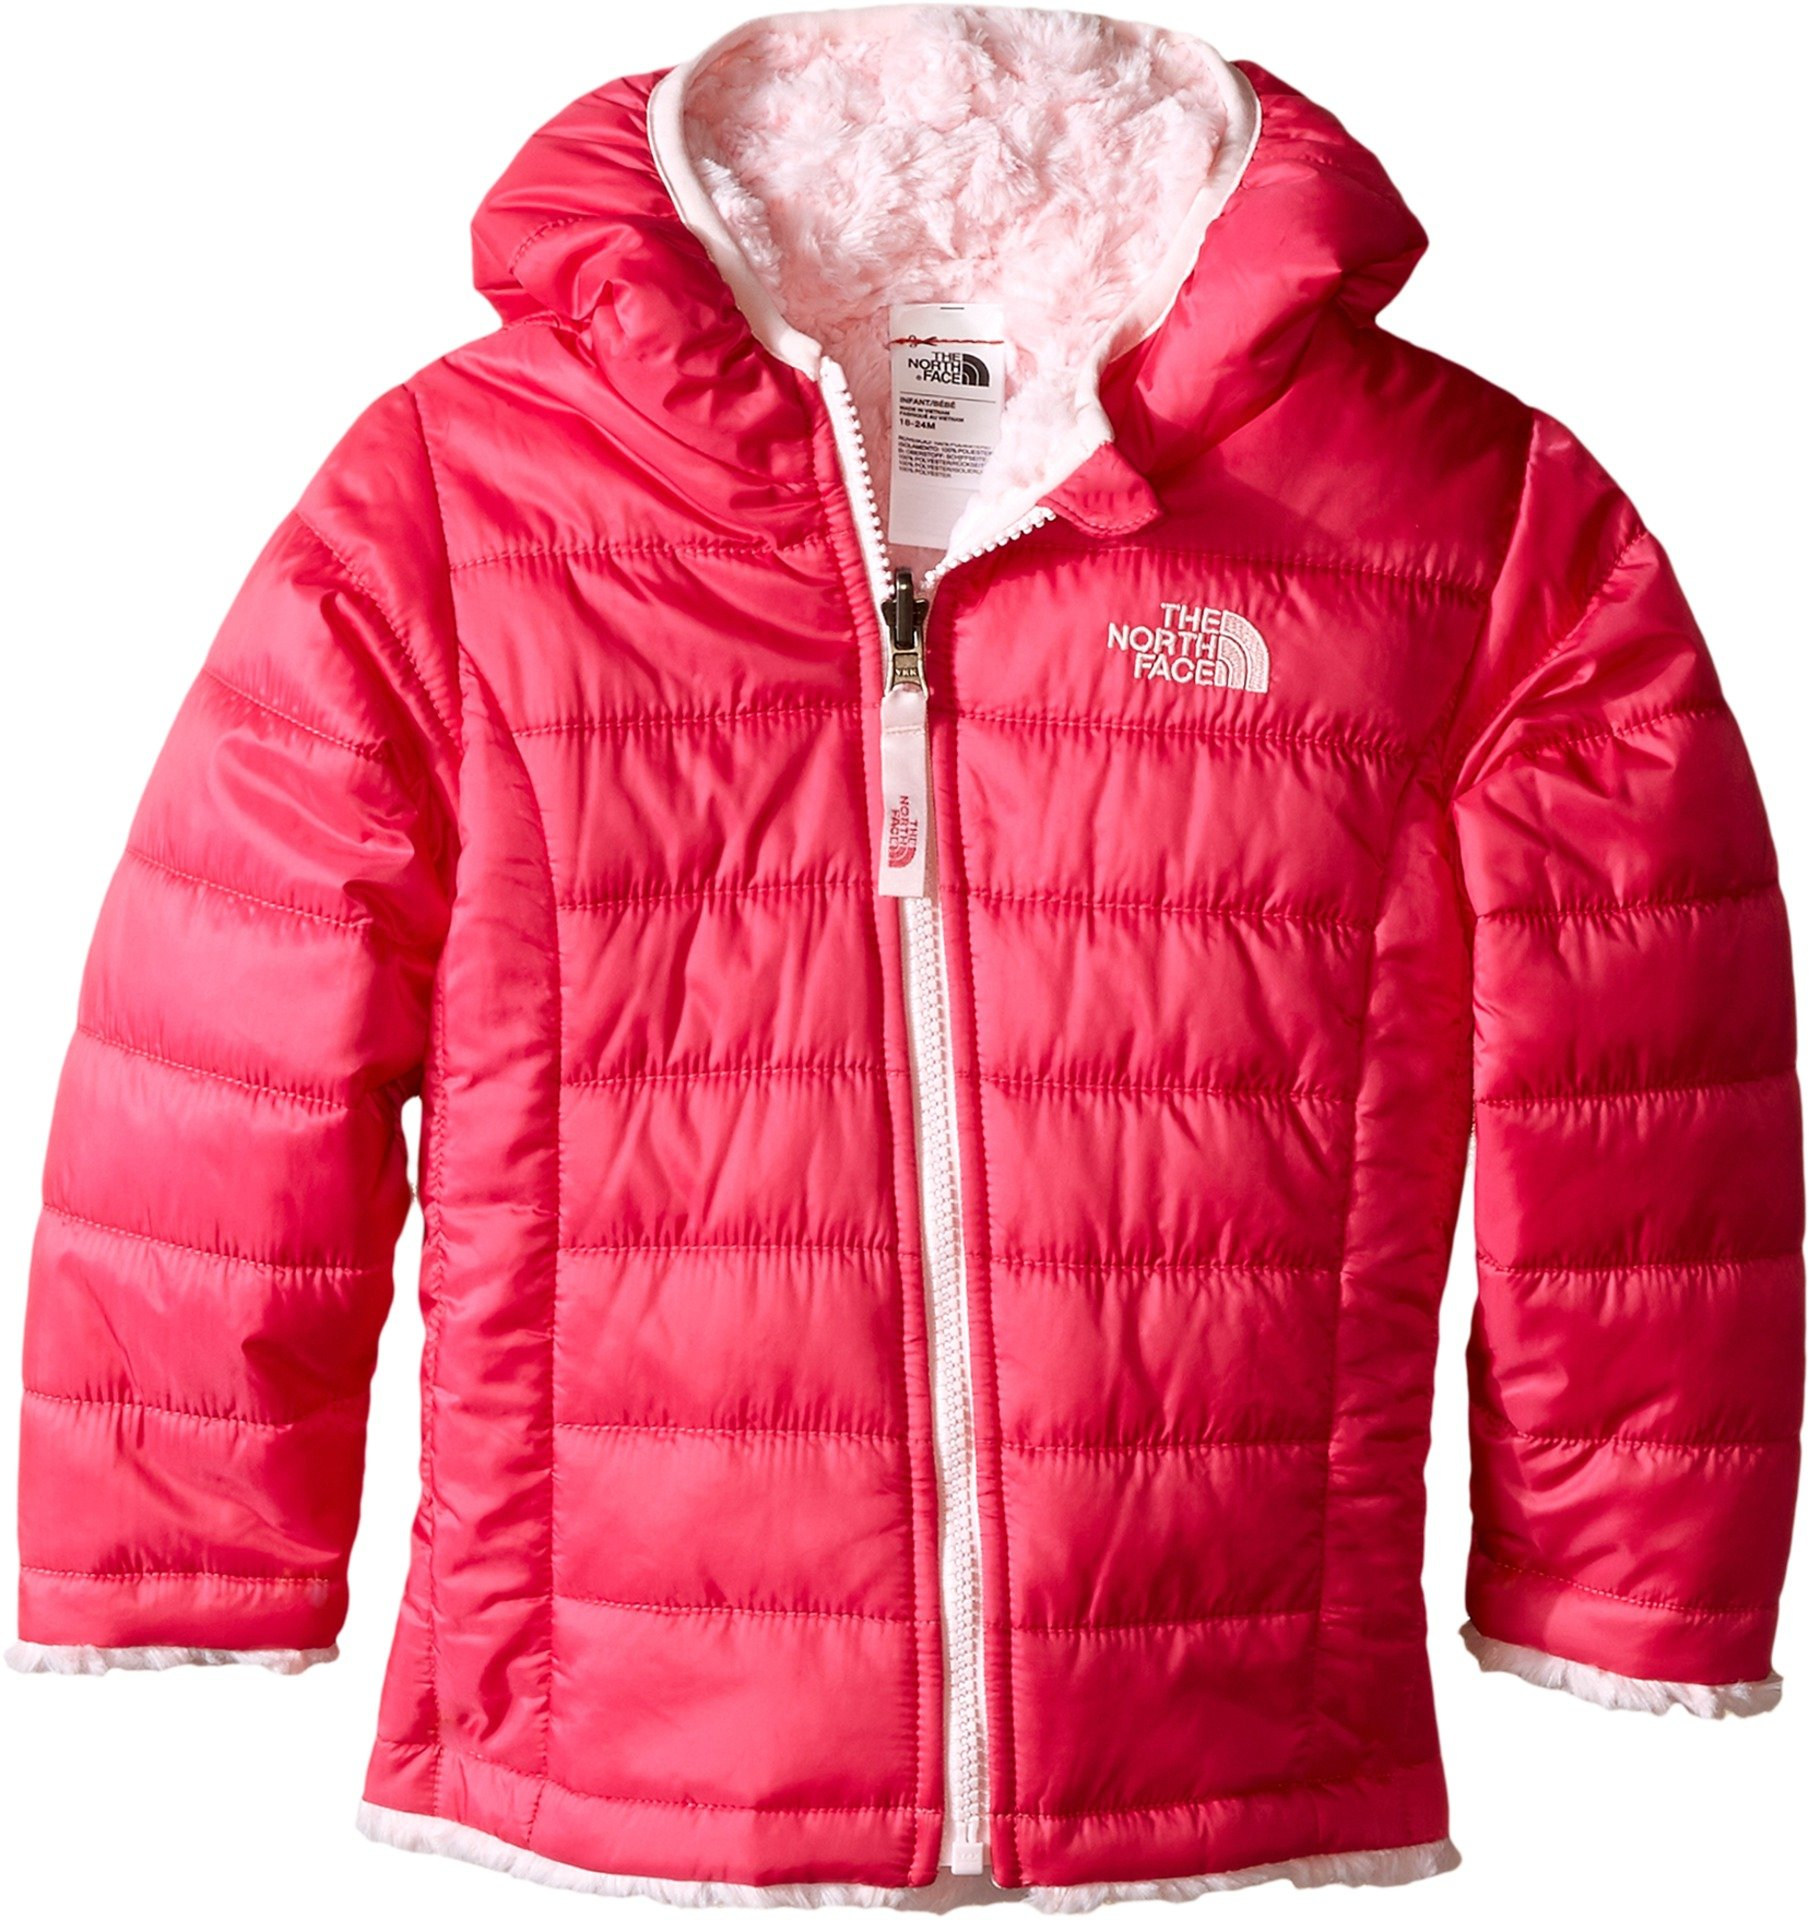 The North Face Kids Baby Girl's Reversible Mossbud Swirl Hoodie (Infant) Cabaret Pink (Prior Season) 0-3 Months by The North Face